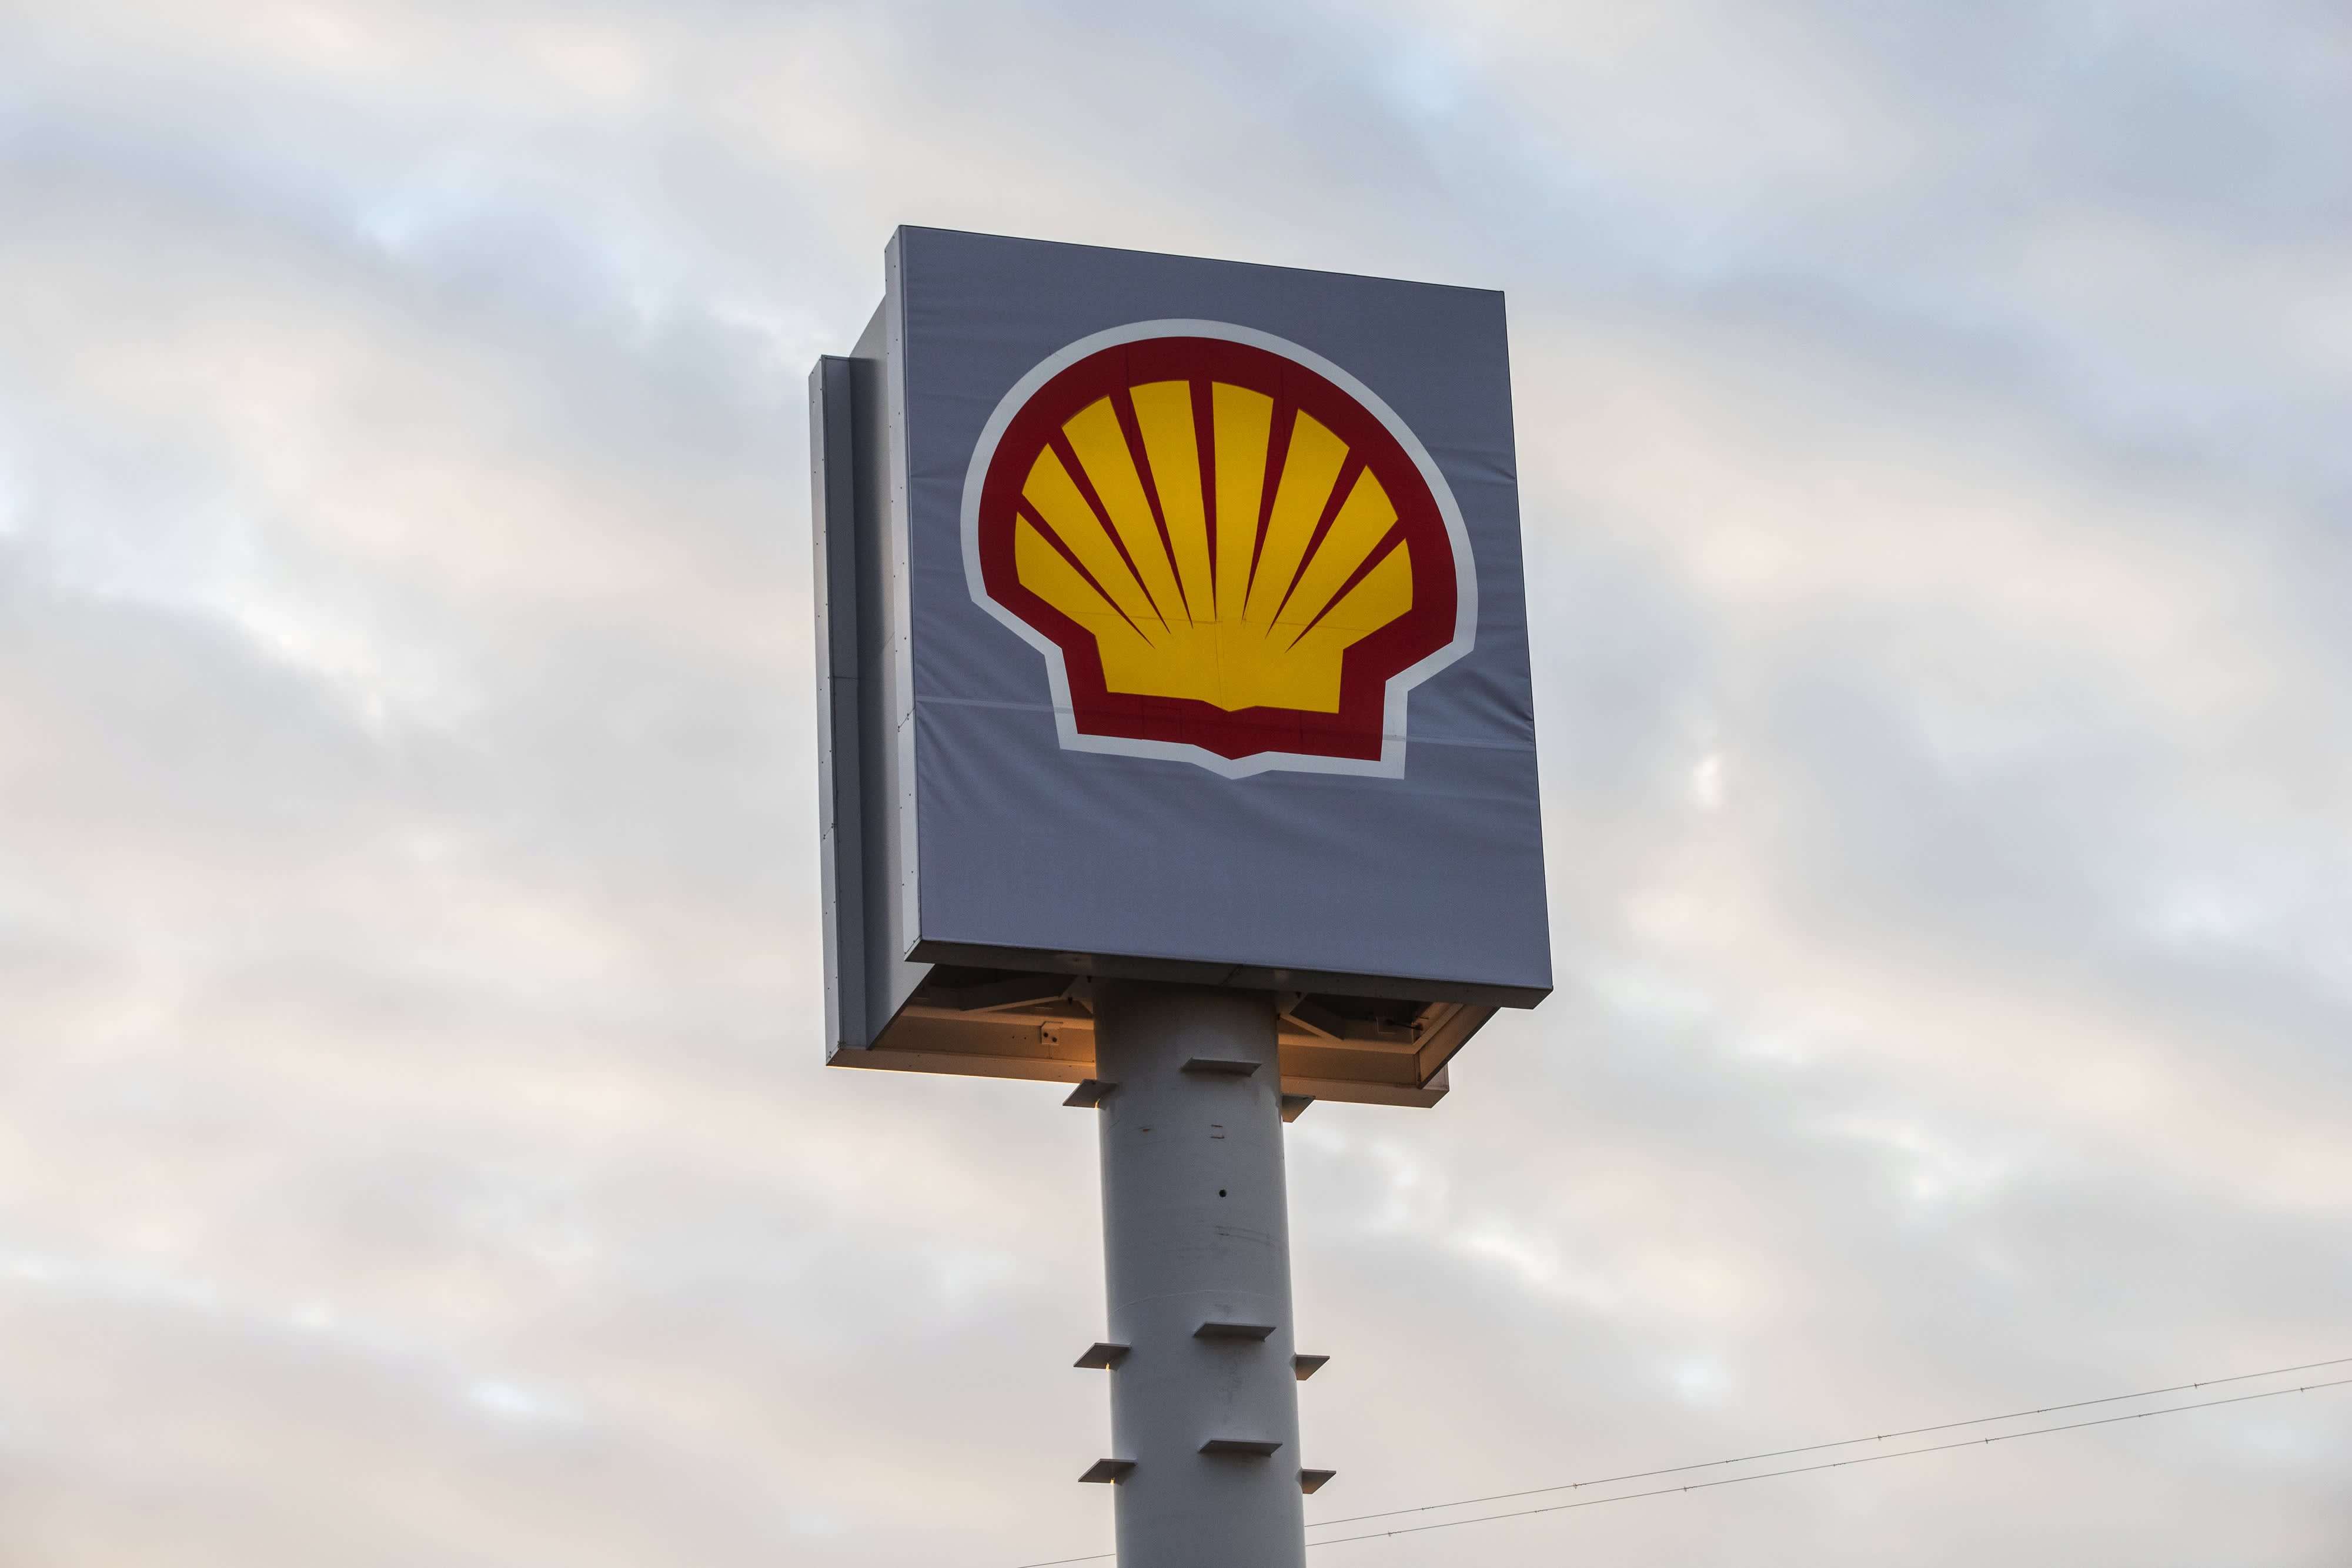 Shell raises dividend for second time in six months after first-quarter earnings beat forecasts